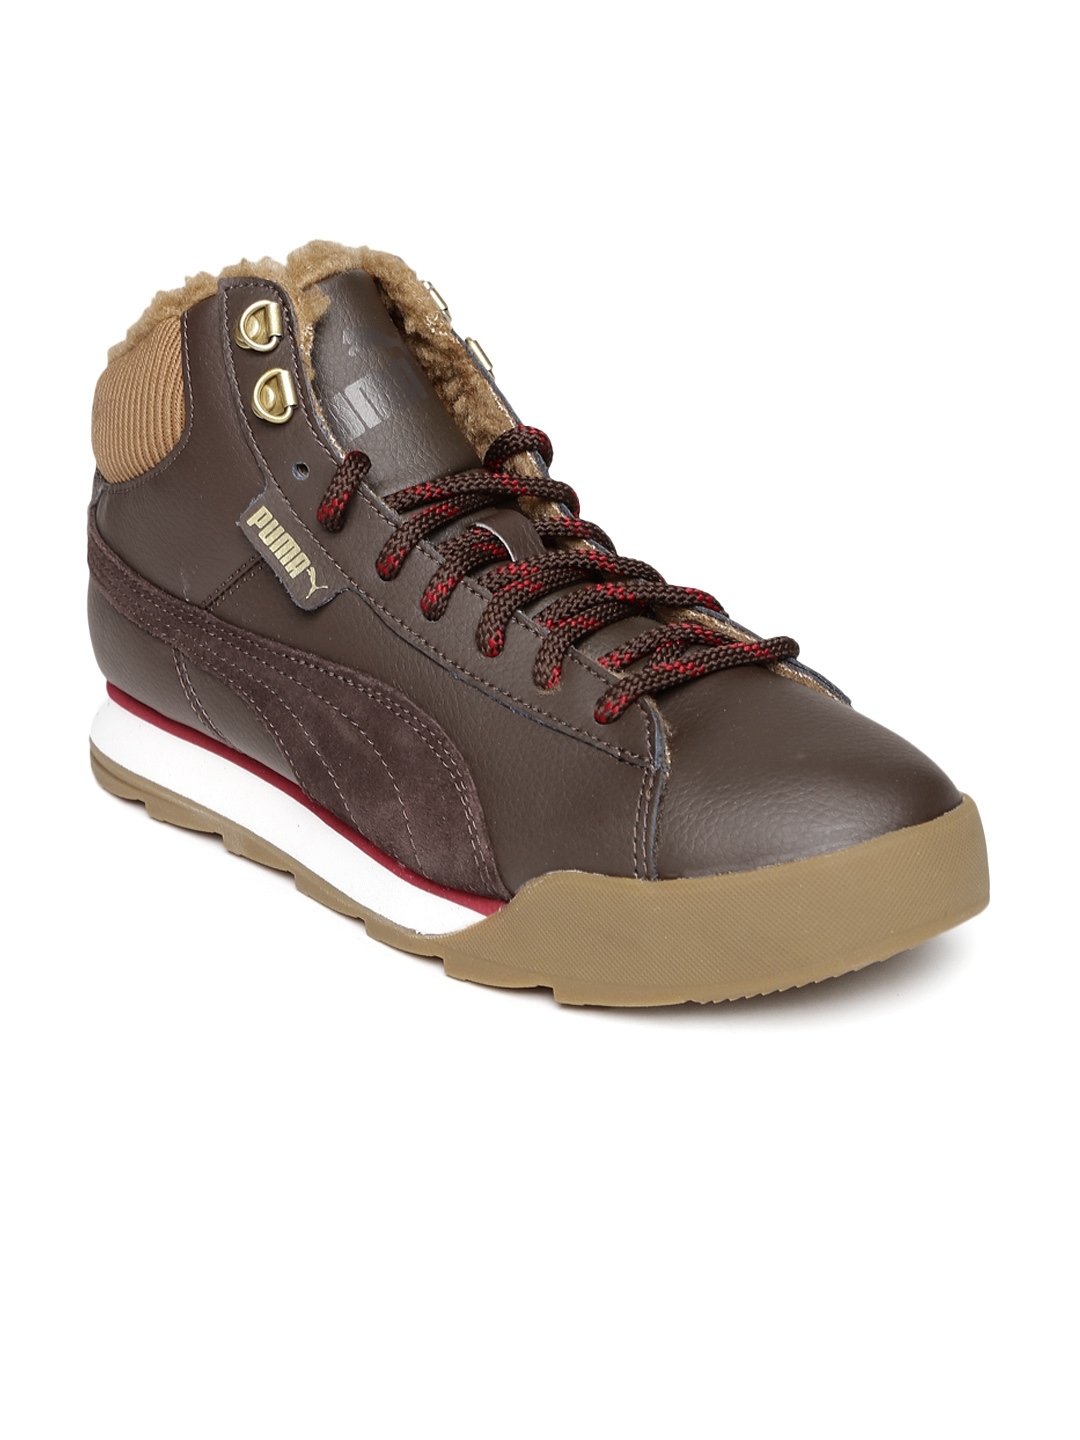 1948 For Shoes Mid Men Buy Puma Brown Rugged Casual q8znpt1